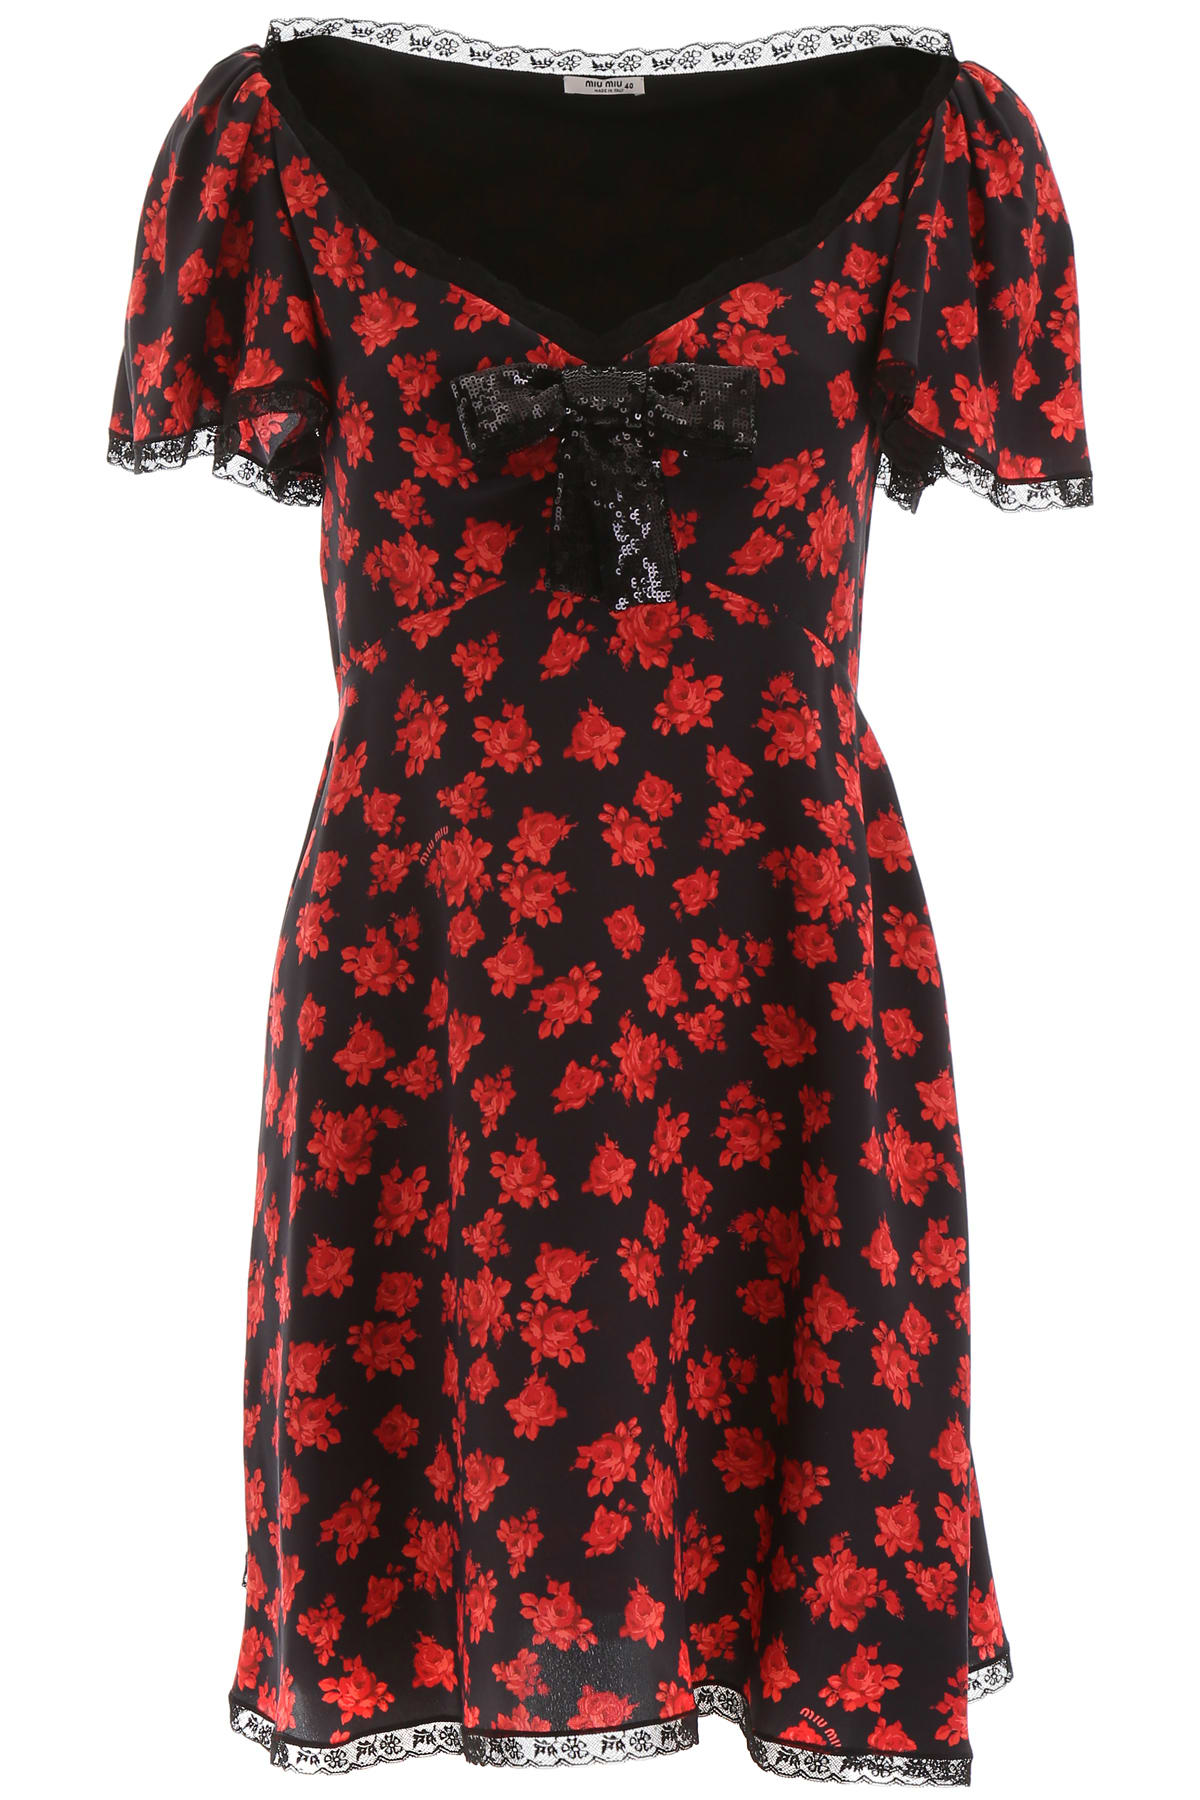 Miu Miu Rose Print Mini Dress